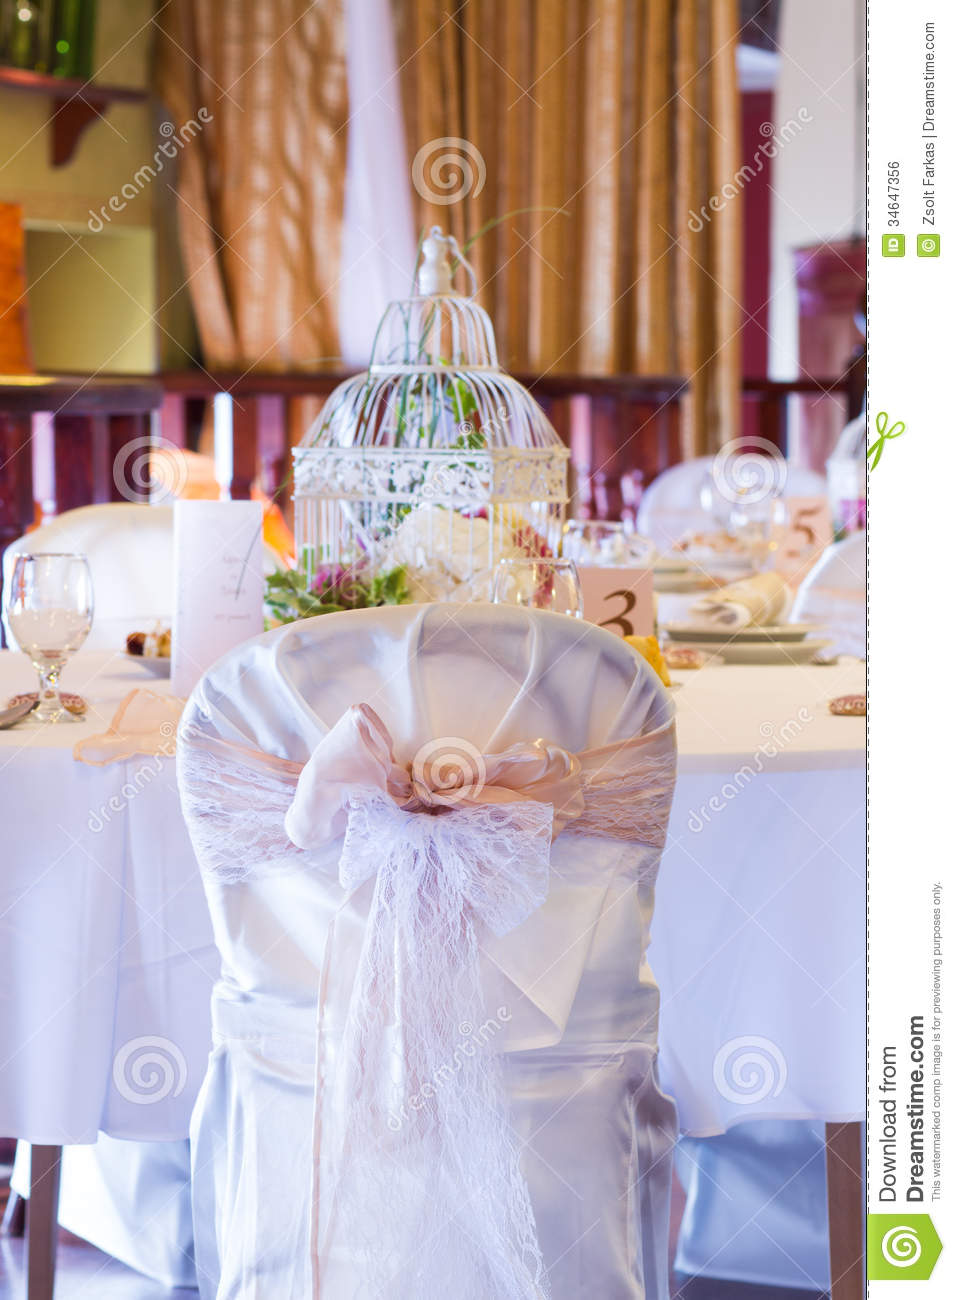 Wedding Table And Chairs With Vintage Decoration Stock